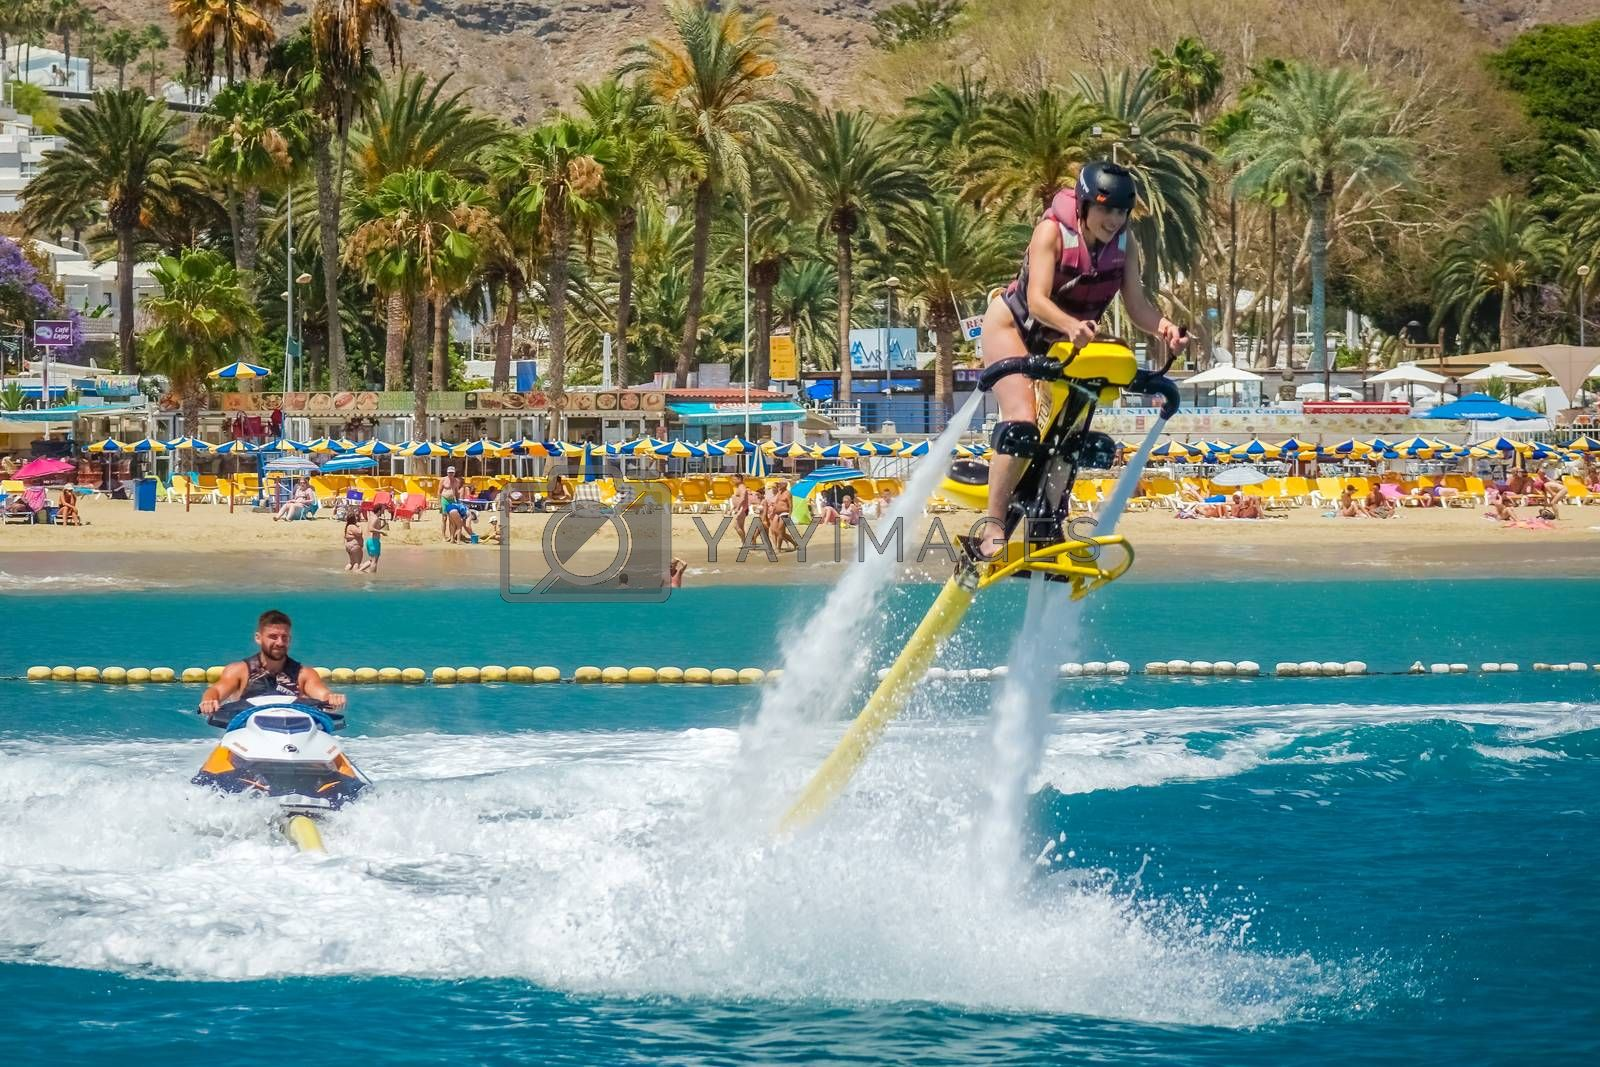 Woman hovering above water on a jet ski in Gran Canaria, Spain. Picture taken on the 8th May 2015.